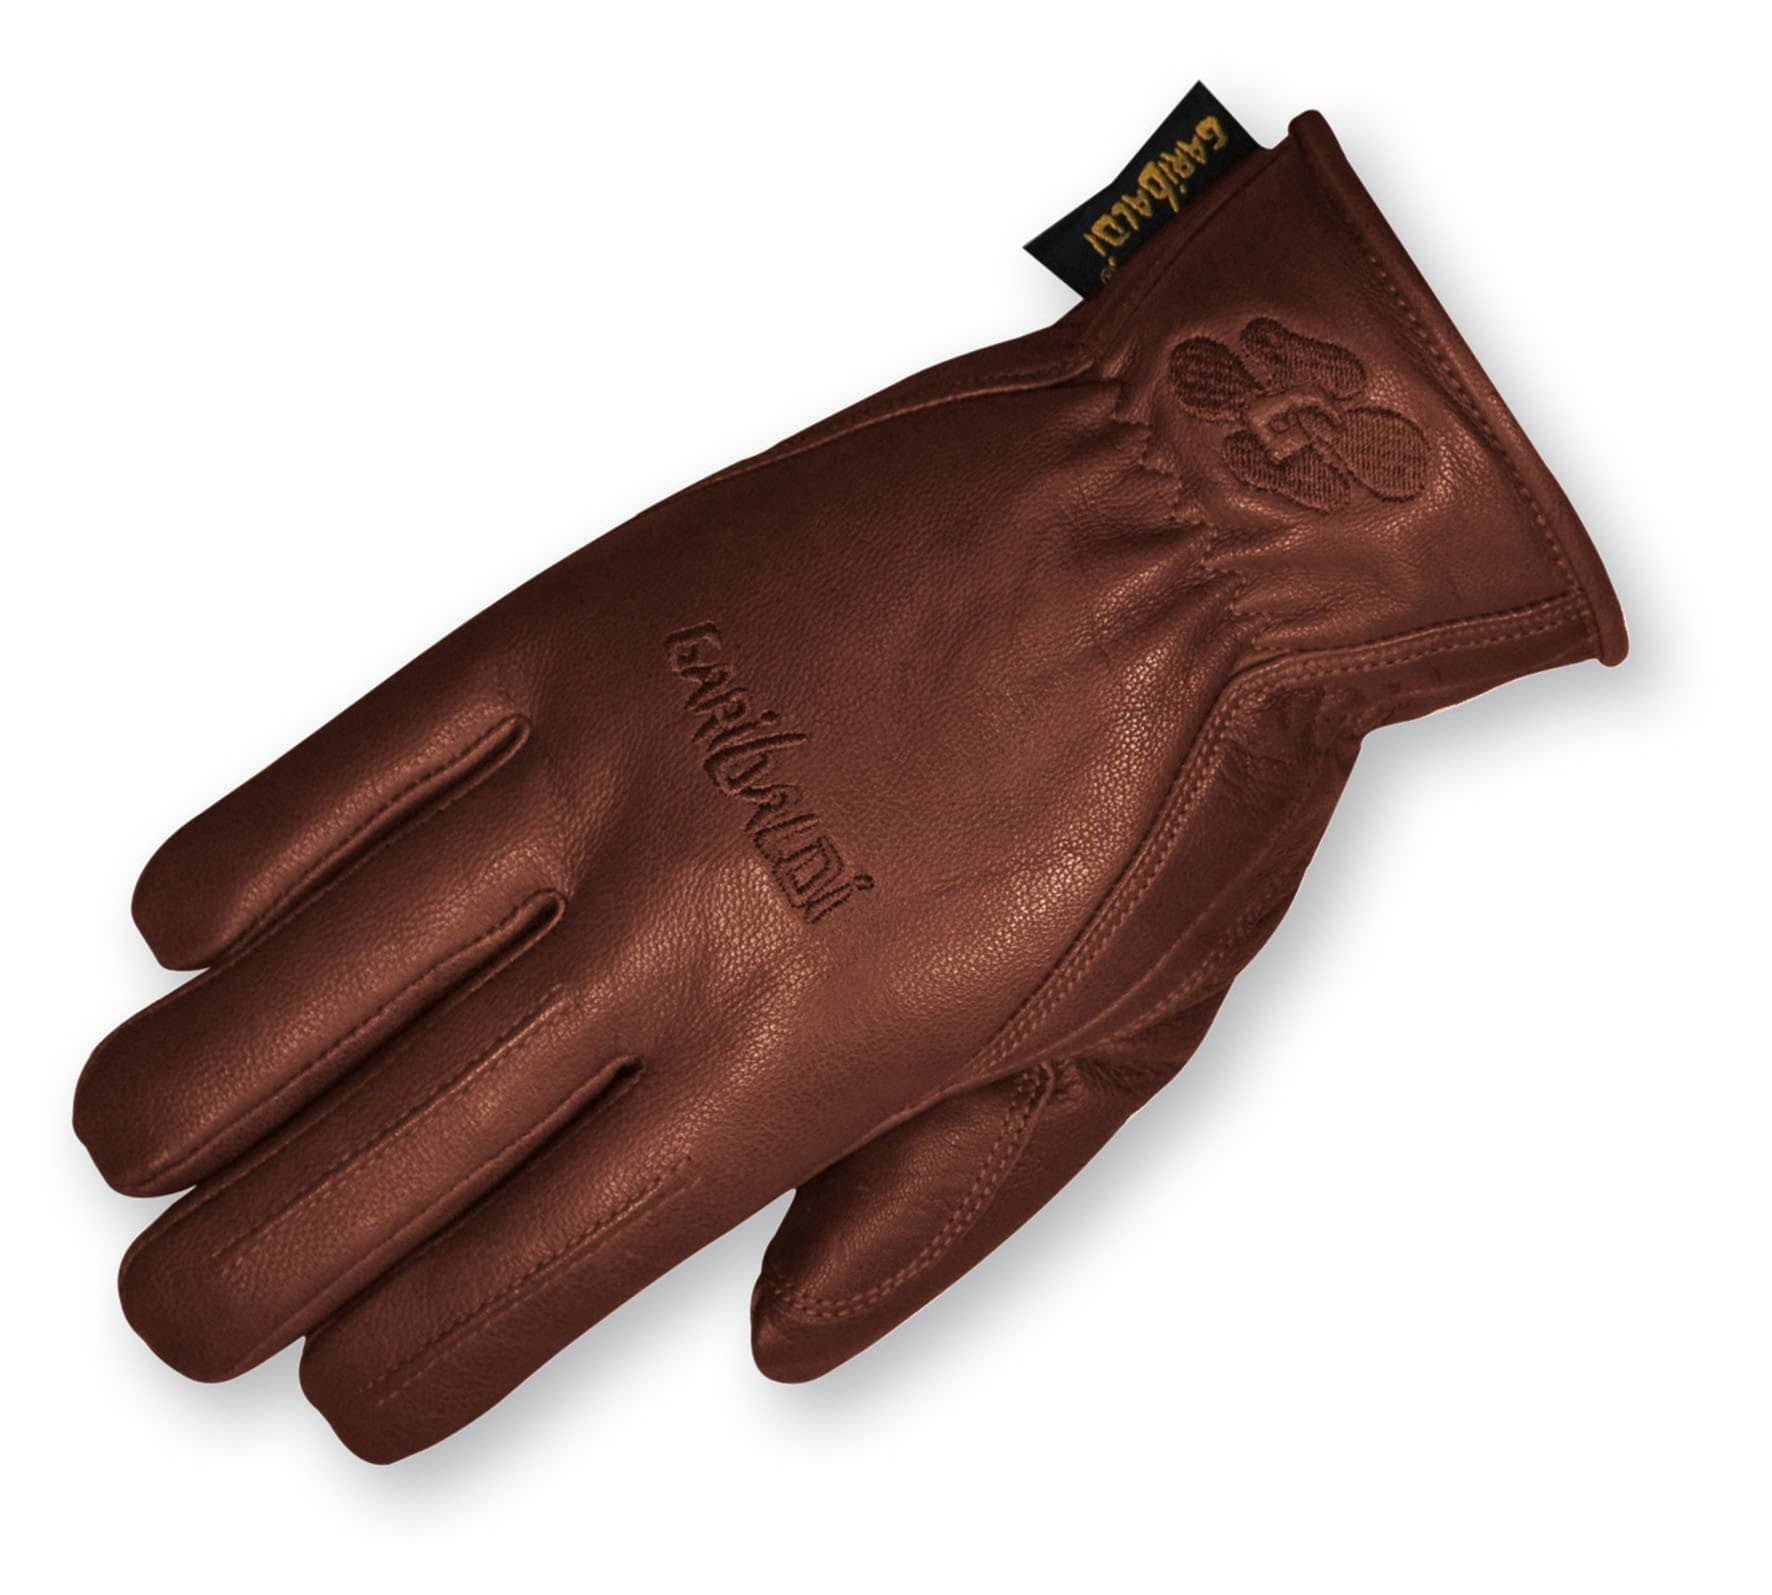 Garibaldi - Garibaldi Campus Mens Vintage Winter Gloves - Gloves - Salt Flats Clothing